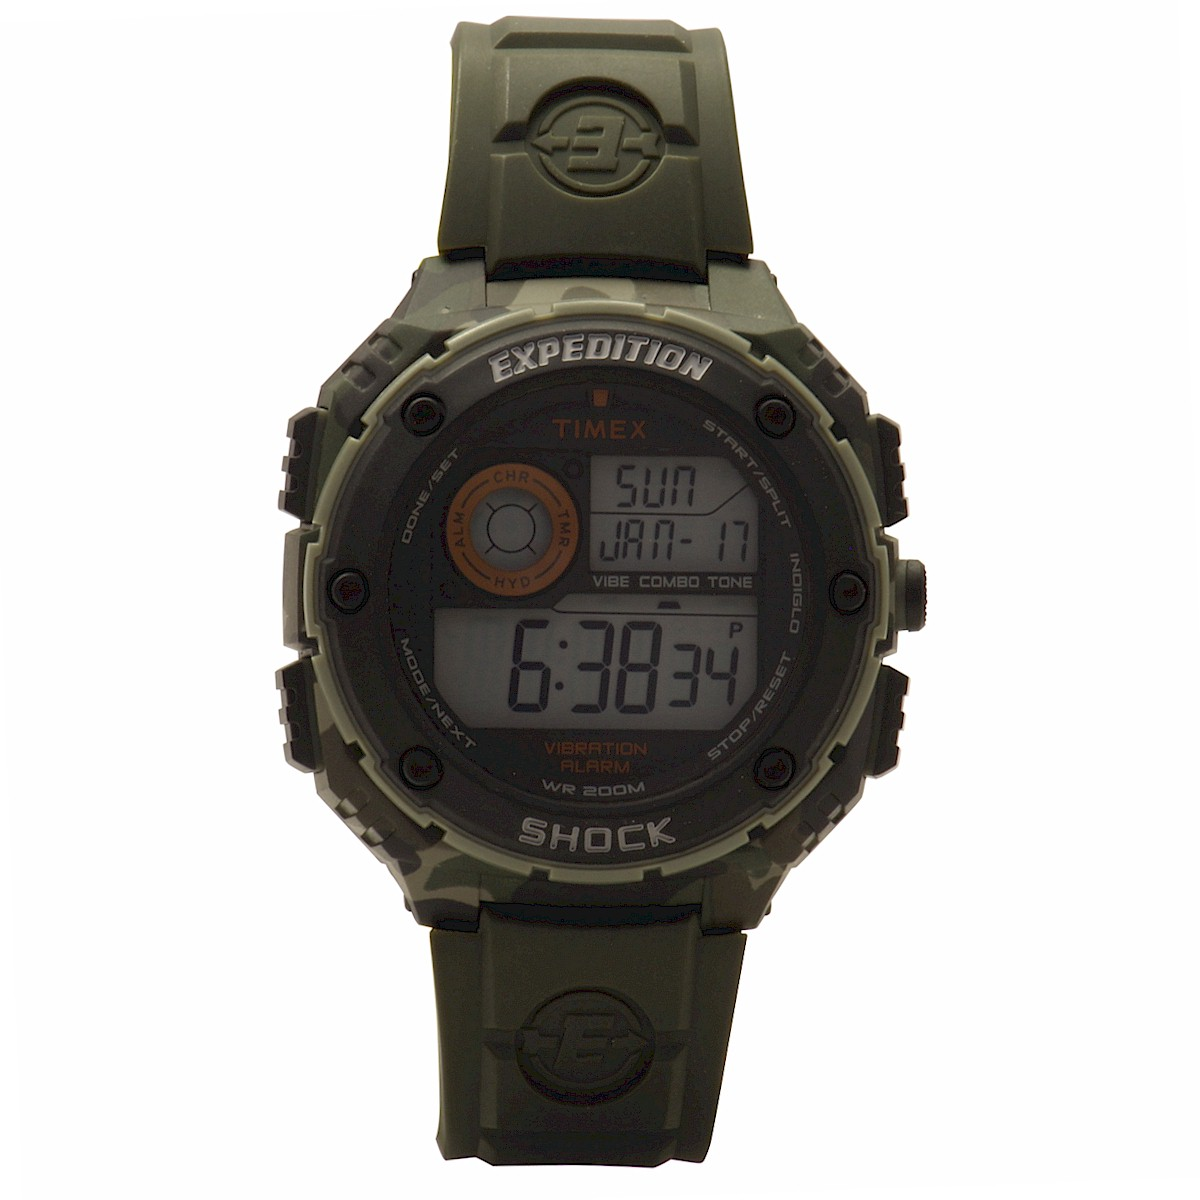 512f487e18b1 Timex Men s Expedition T49981DH Green Camo Black Digital Sport Watch by  Timex